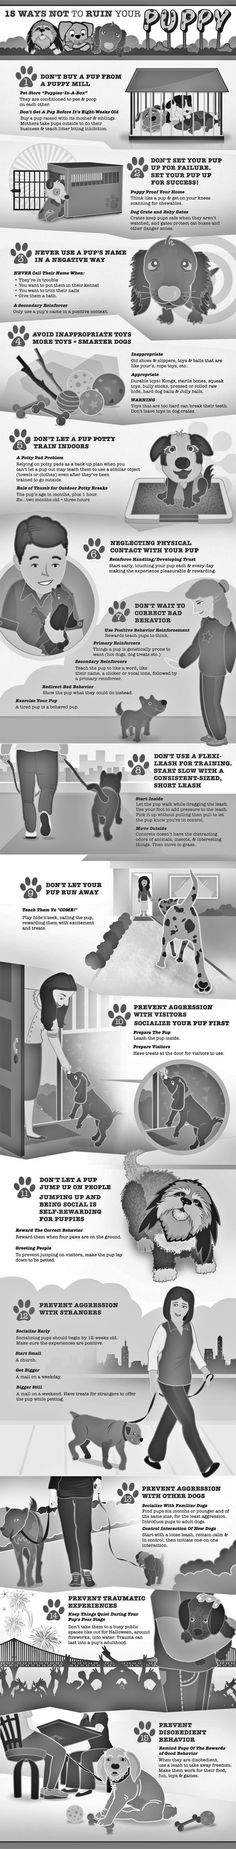 M.         www.thedogtrainingsecret.com/15-Ways-Not-To-Ruin-Your-Puppy/